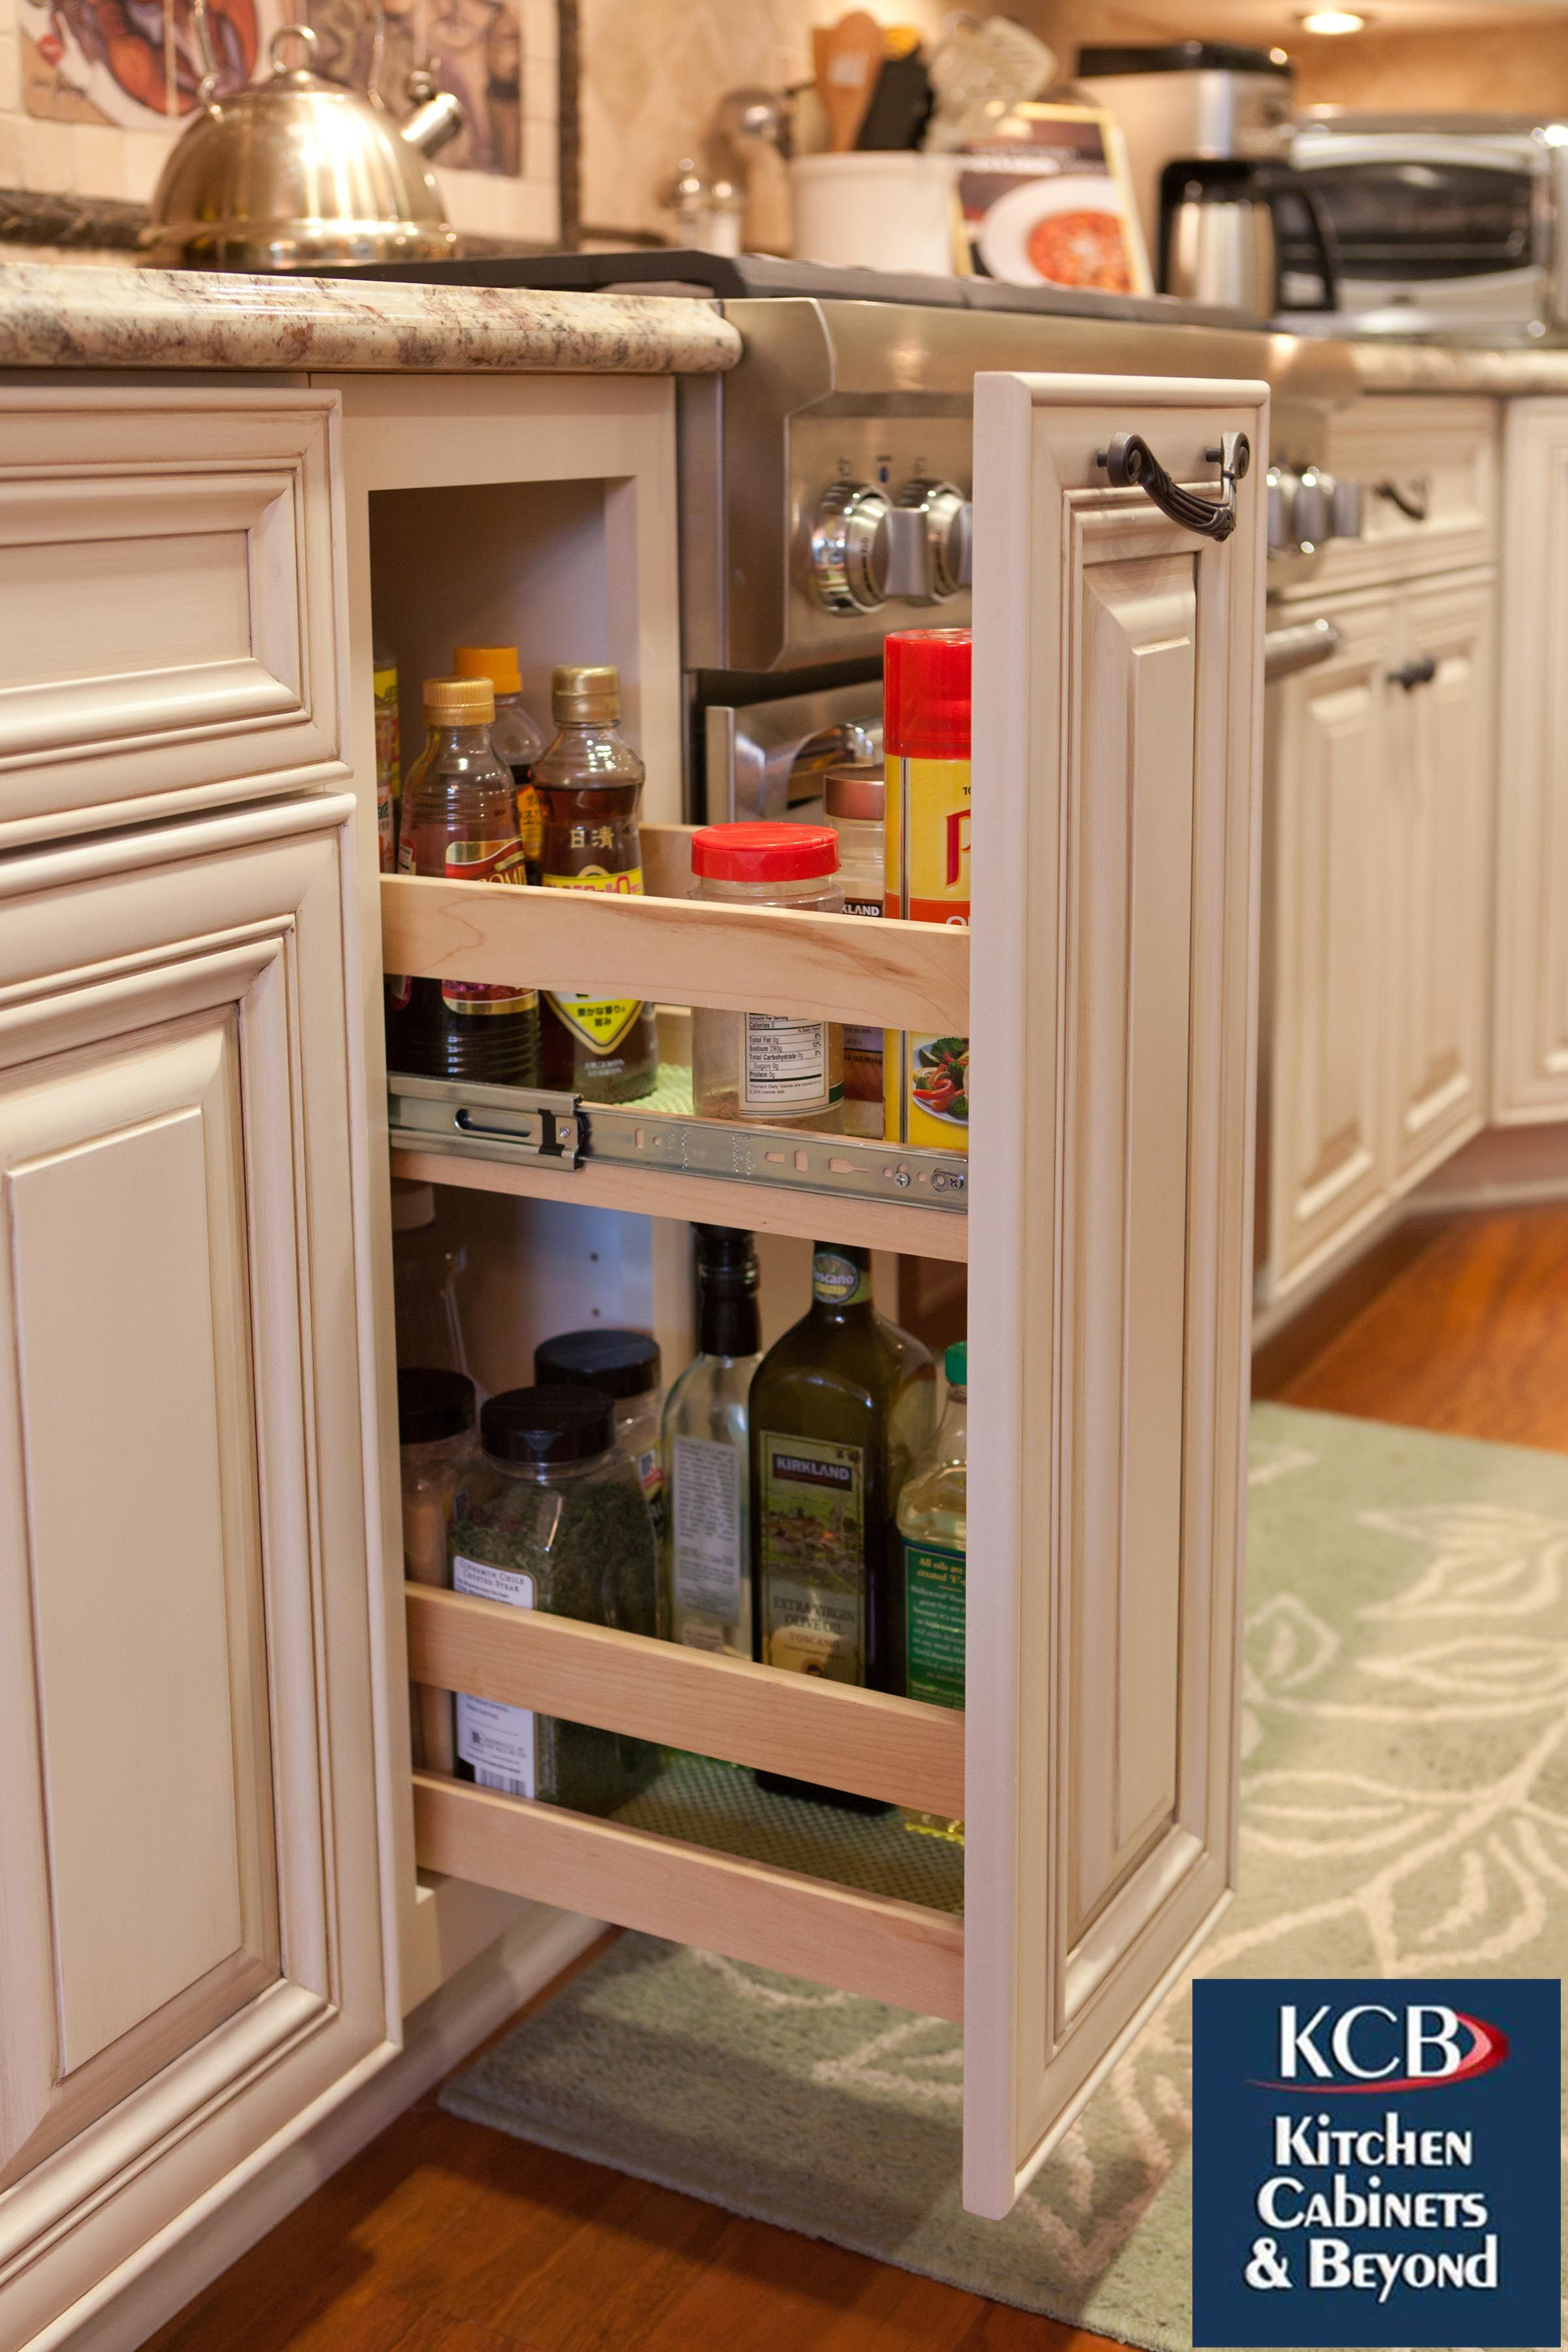 Lots Of Hidden Kitchen Cabinet Storage For Organizing Your Cooking Supplies.  A Kitchen Remodel In